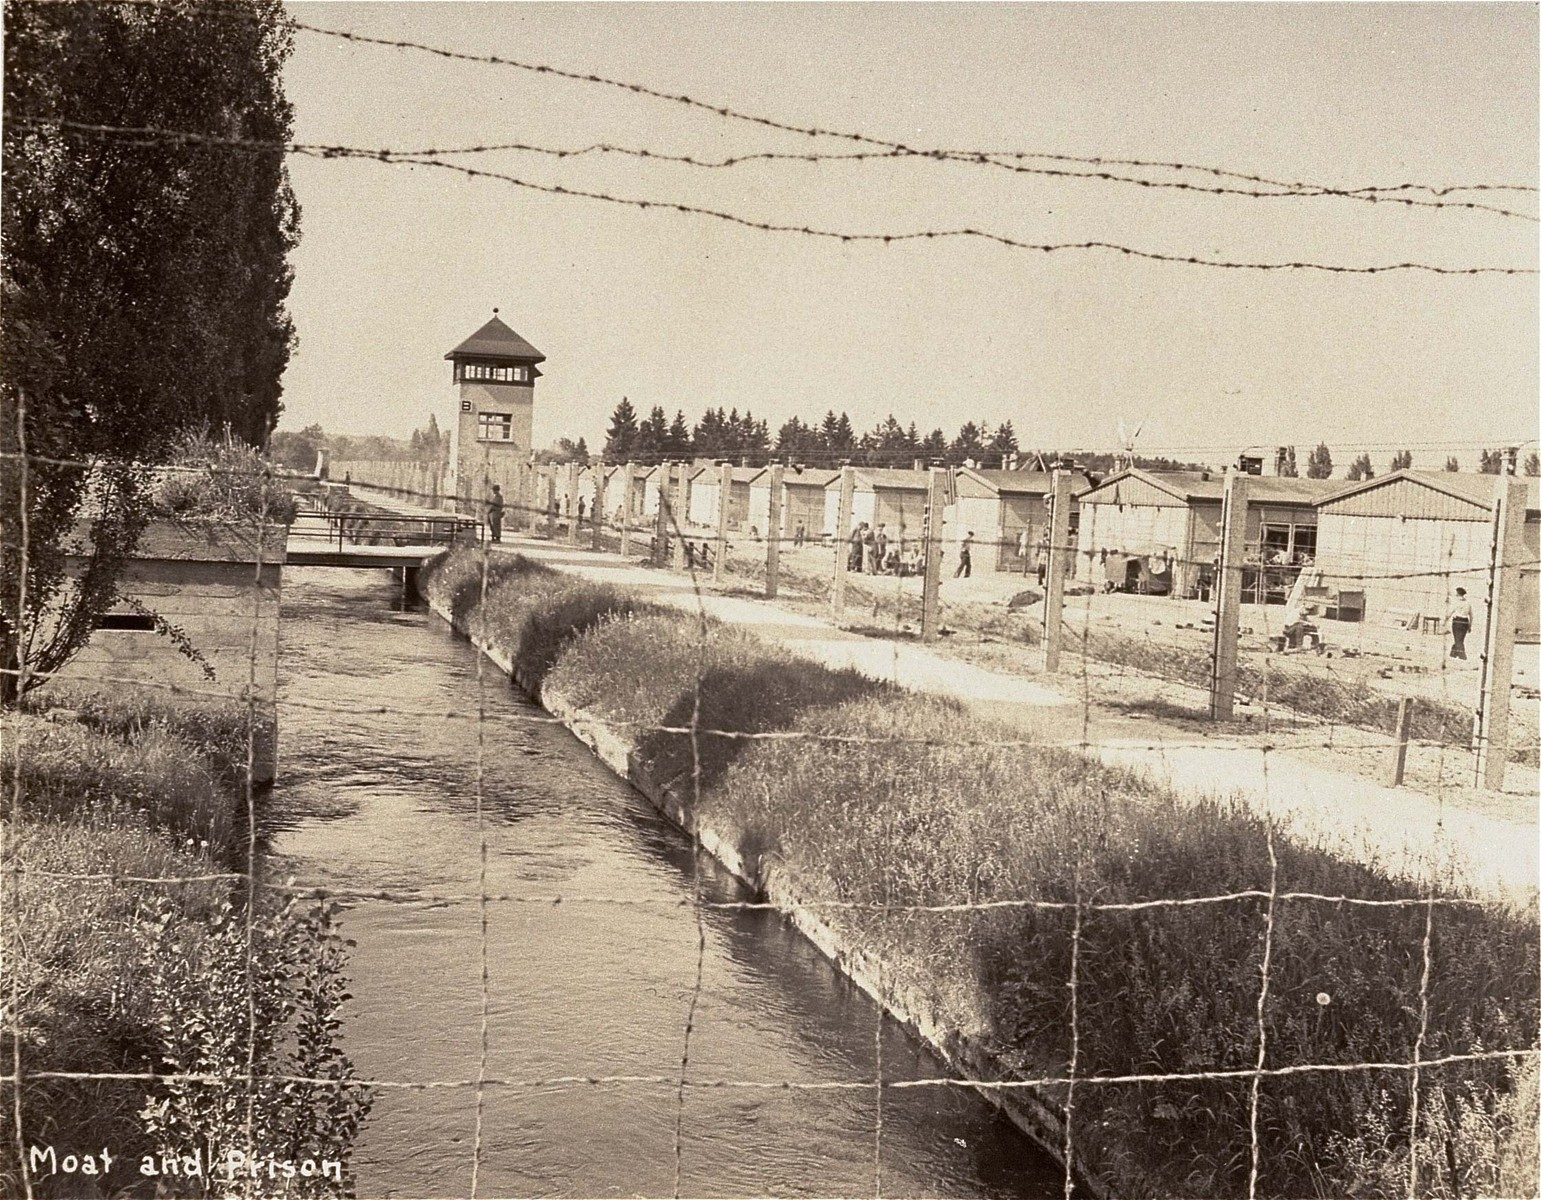 View of a section of the newly liberated Dachau concentration camp as seen through the barbed wire fence.